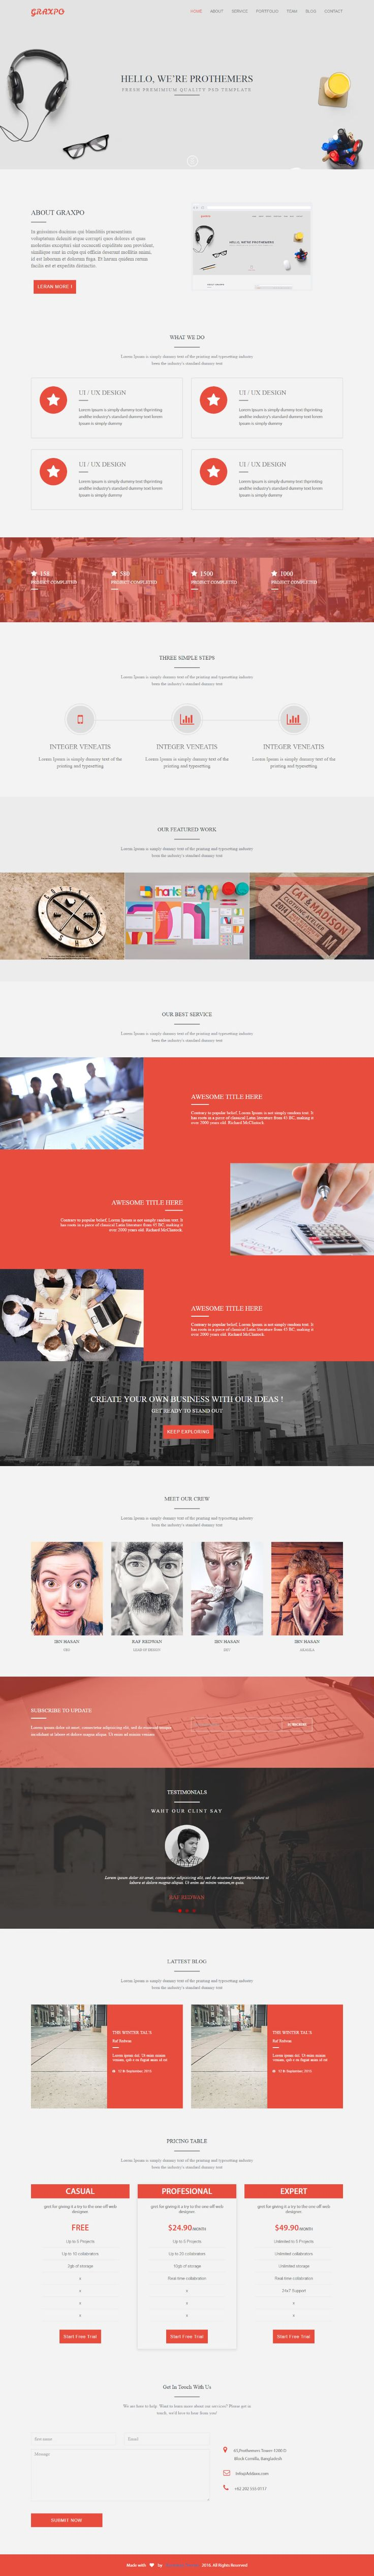 We have created Free Html one page portfolio website. You can download the HTML for your next portfolio website !       #Free #html #website #template #portfolio #responsive #css #css3 #html5